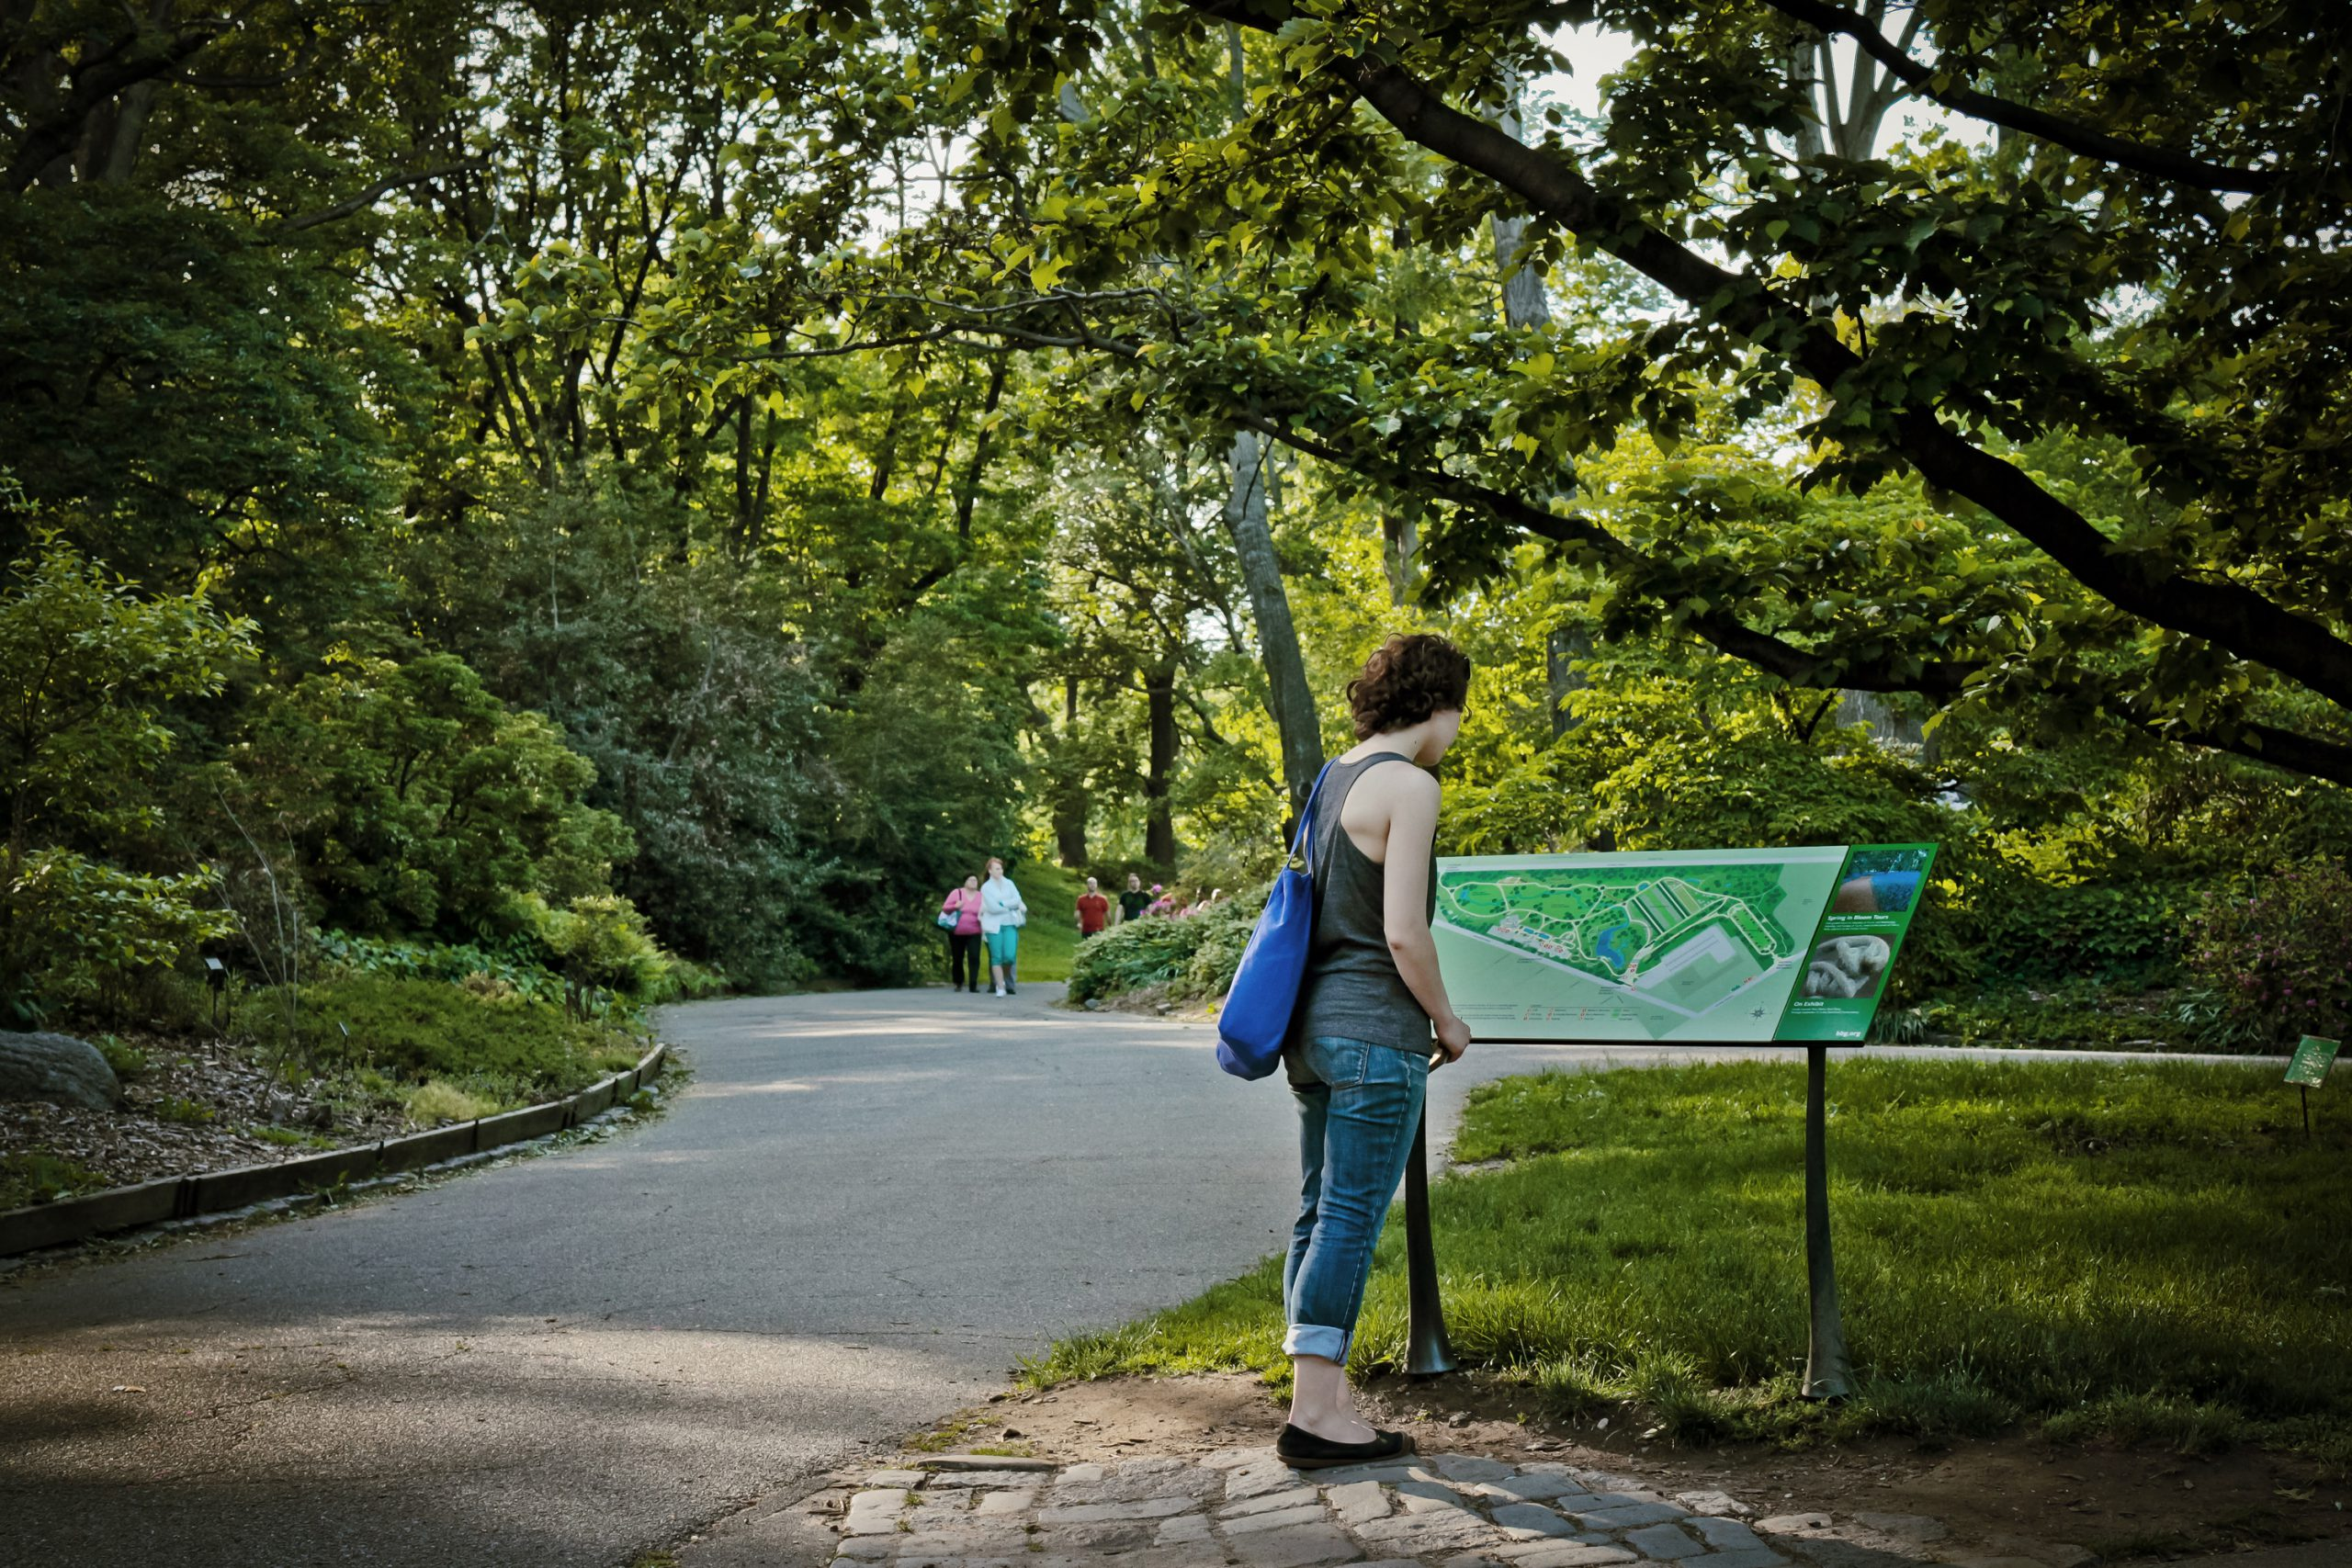 Project image 4 for Mapping, Brooklyn Botanic Garden